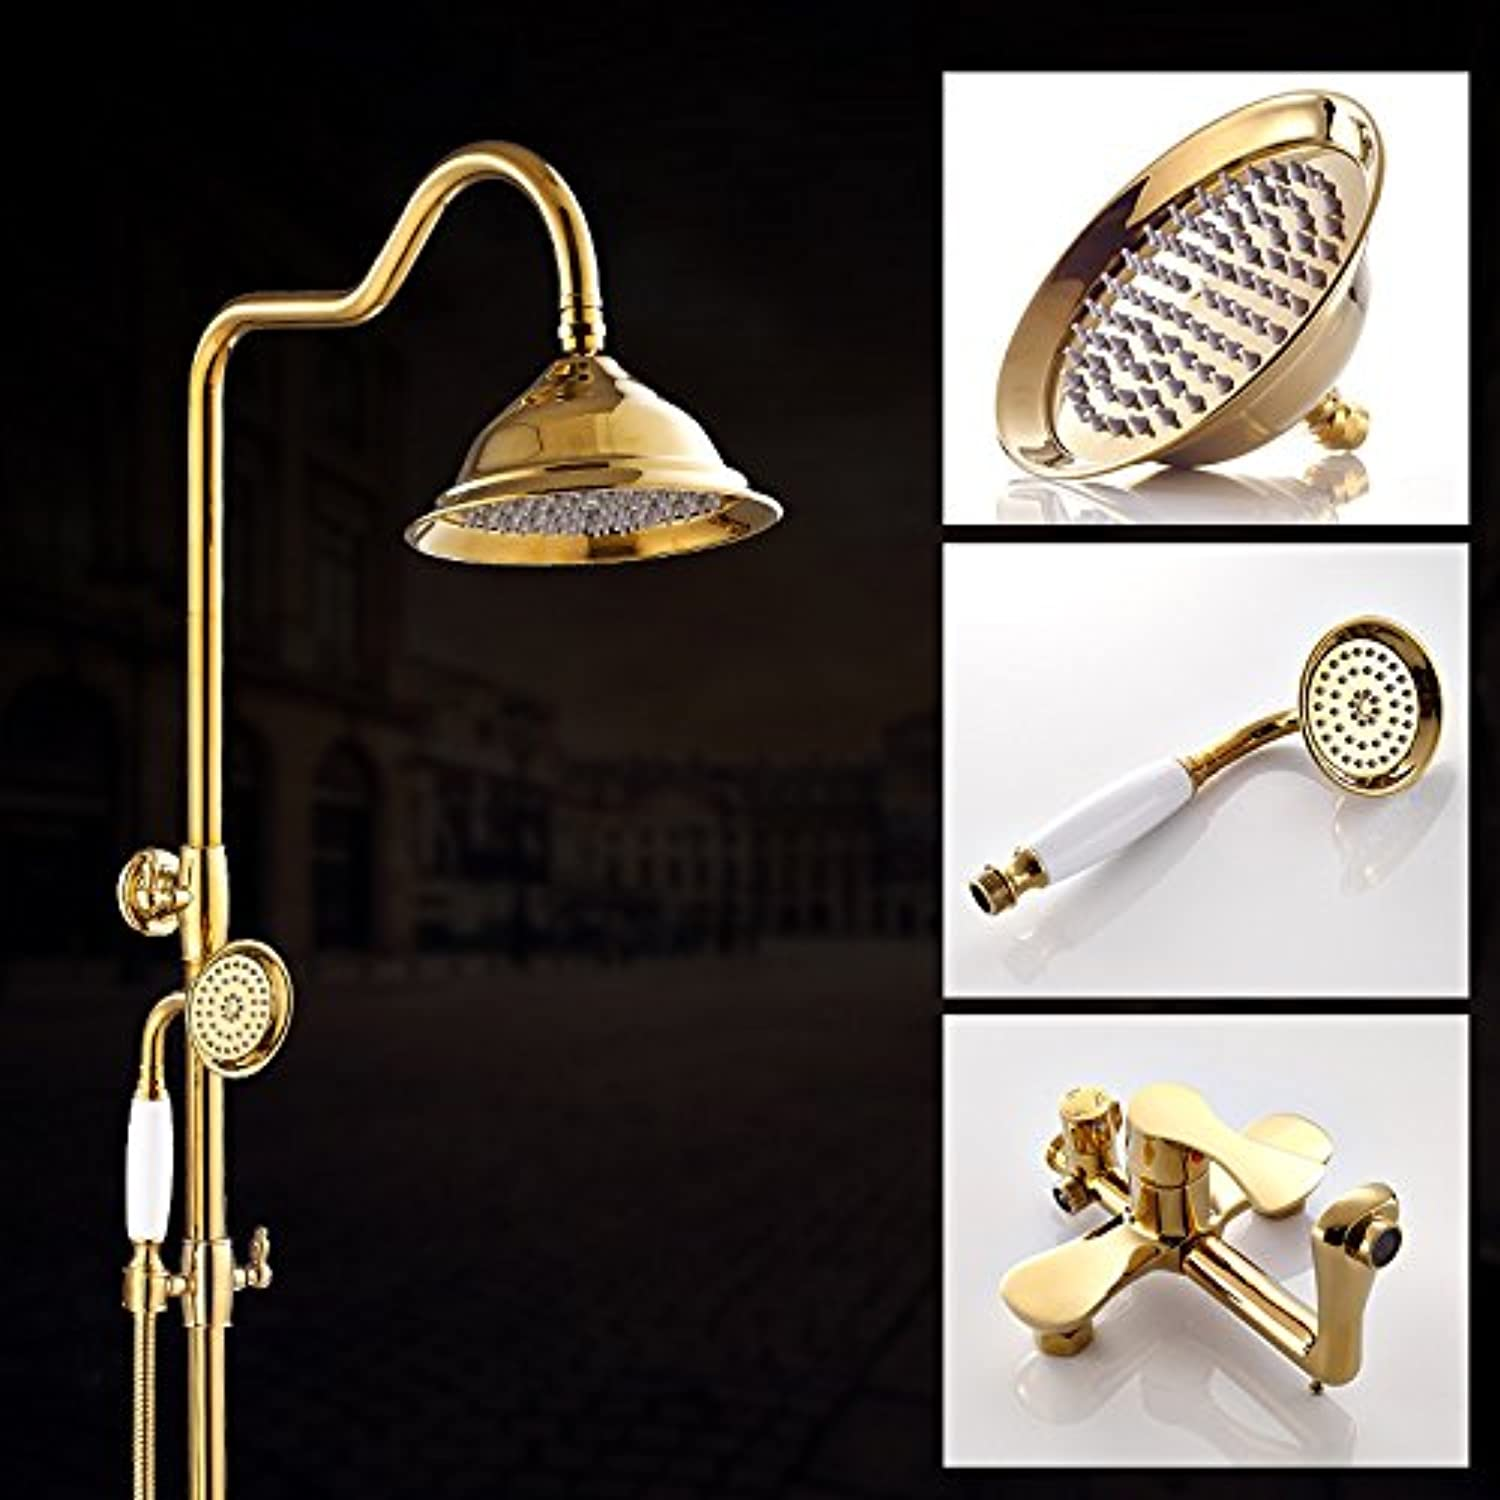 Hlluya Professional Sink Mixer Tap Kitchen Faucet Shower Faucet gold three stall shower Mixer Taps, showers, hot and cold pack B